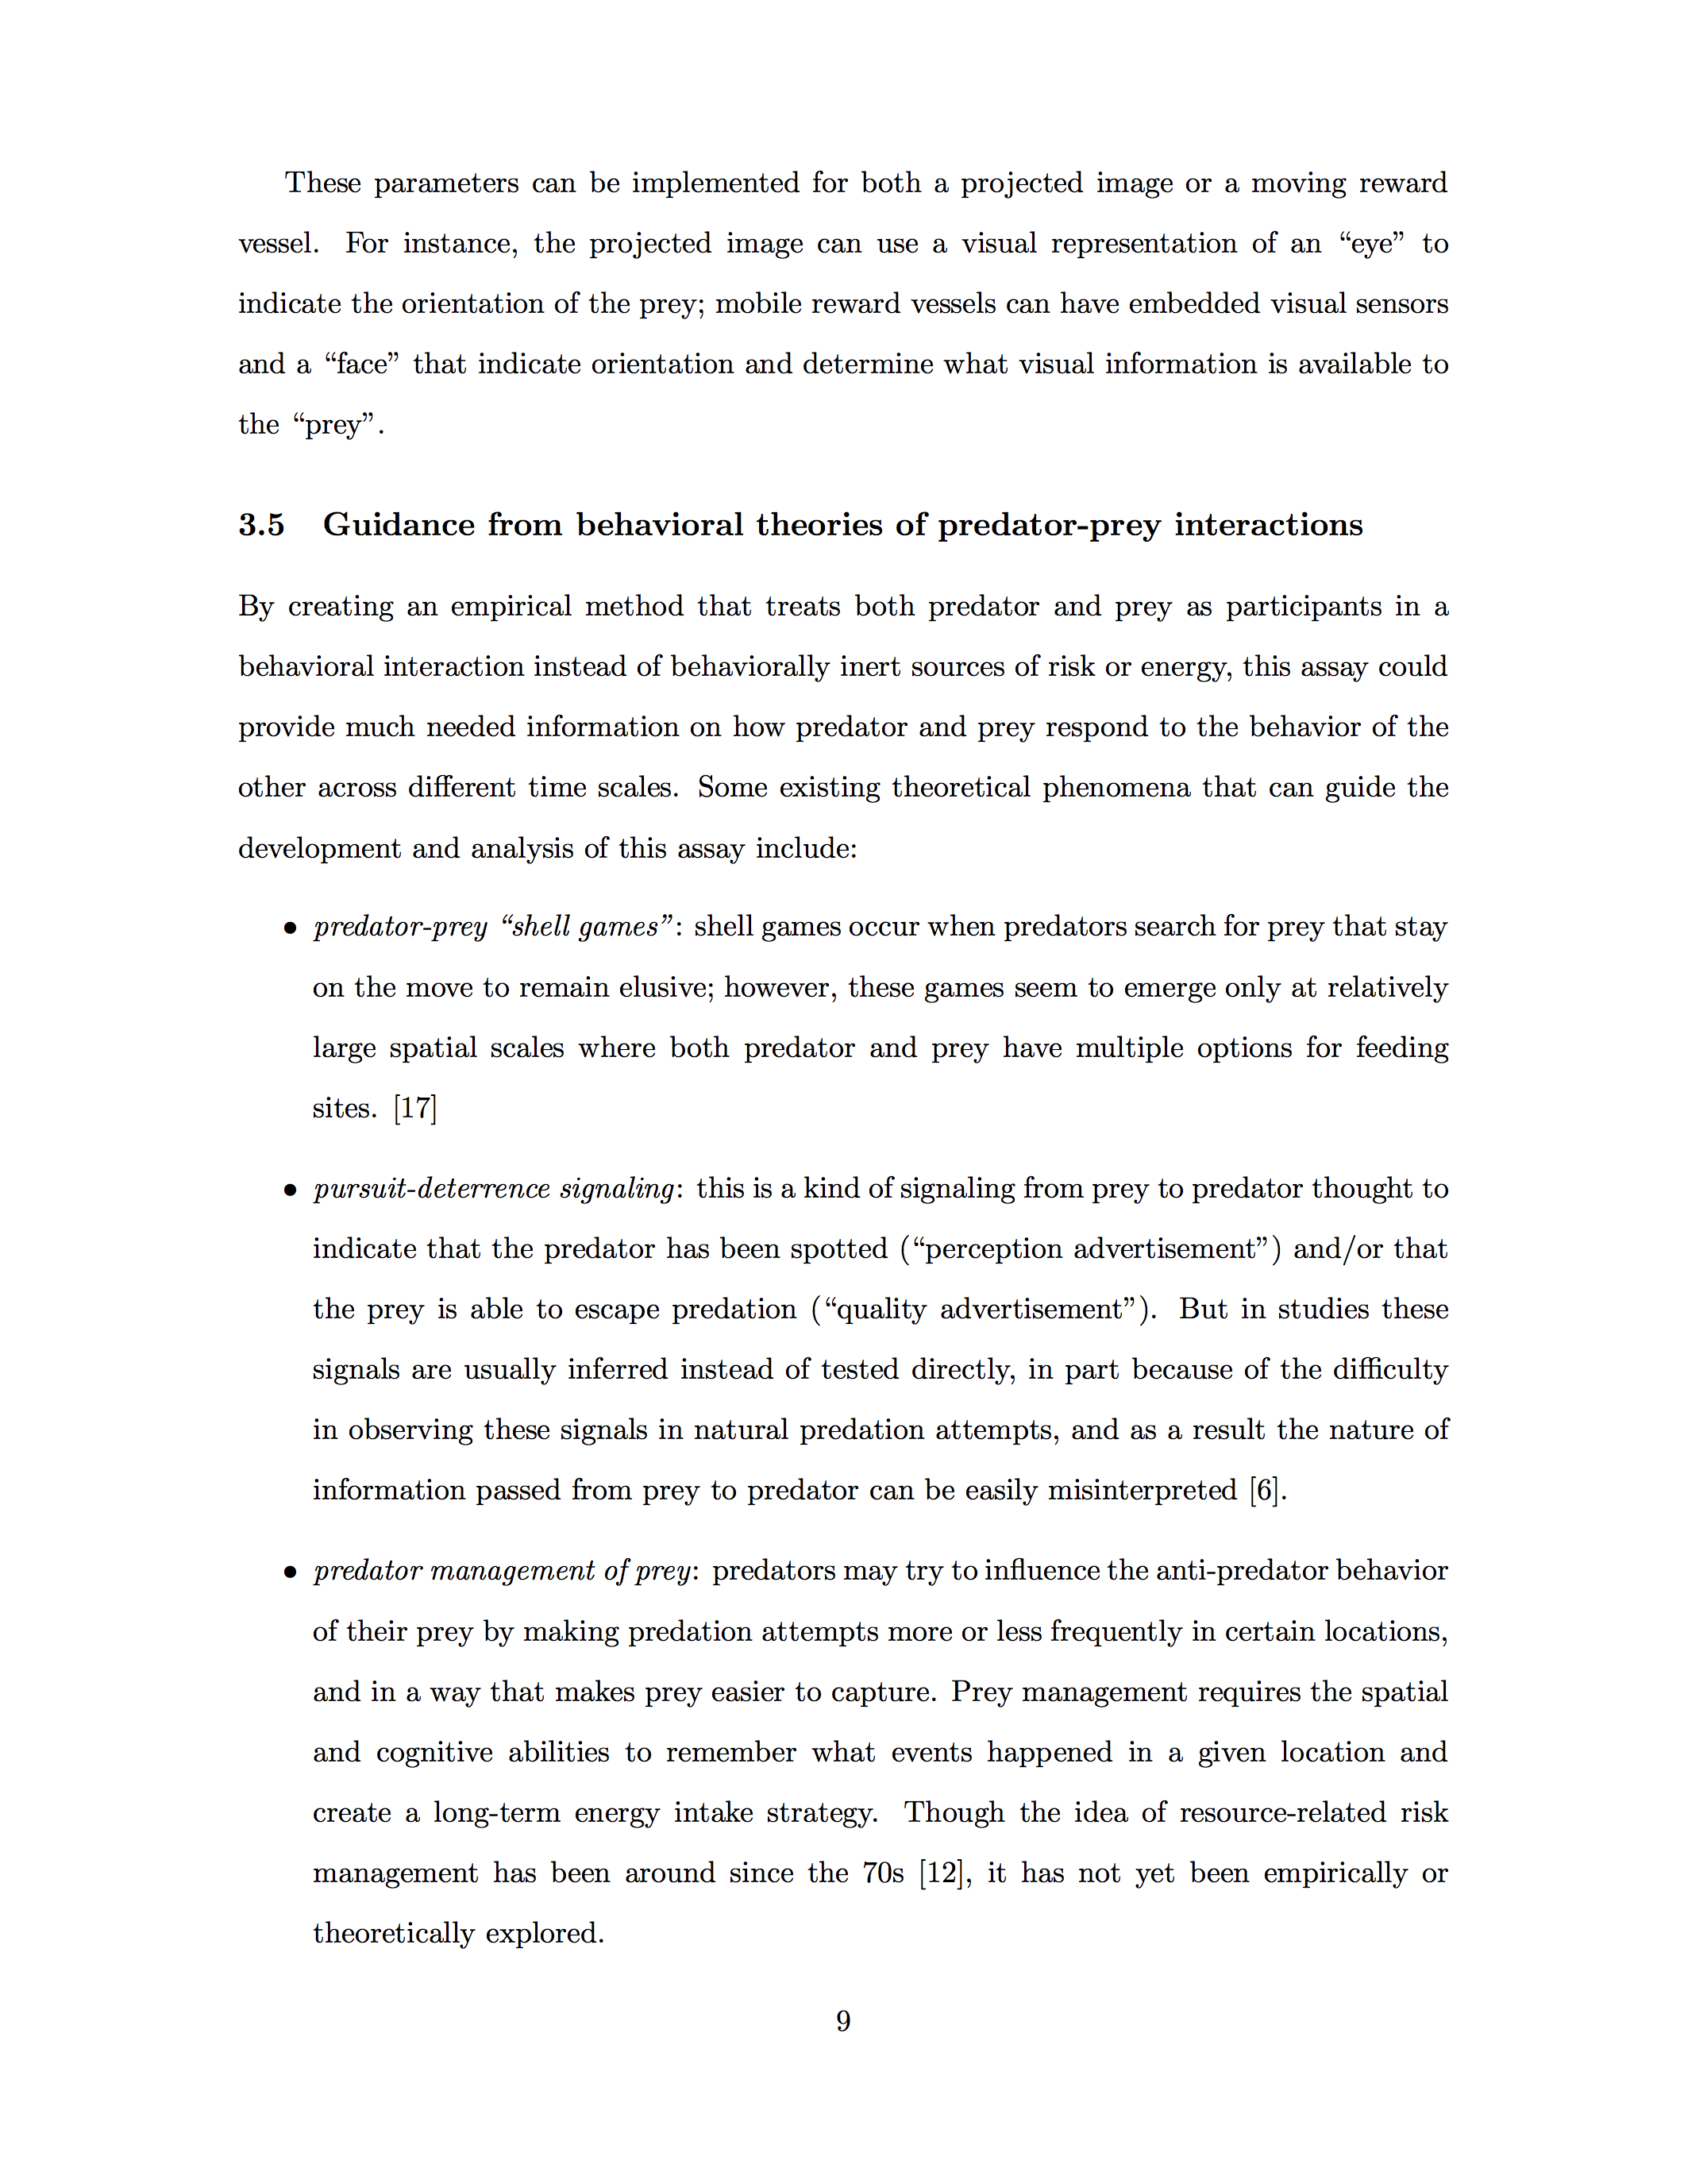 PhD thesis proposal, page 09